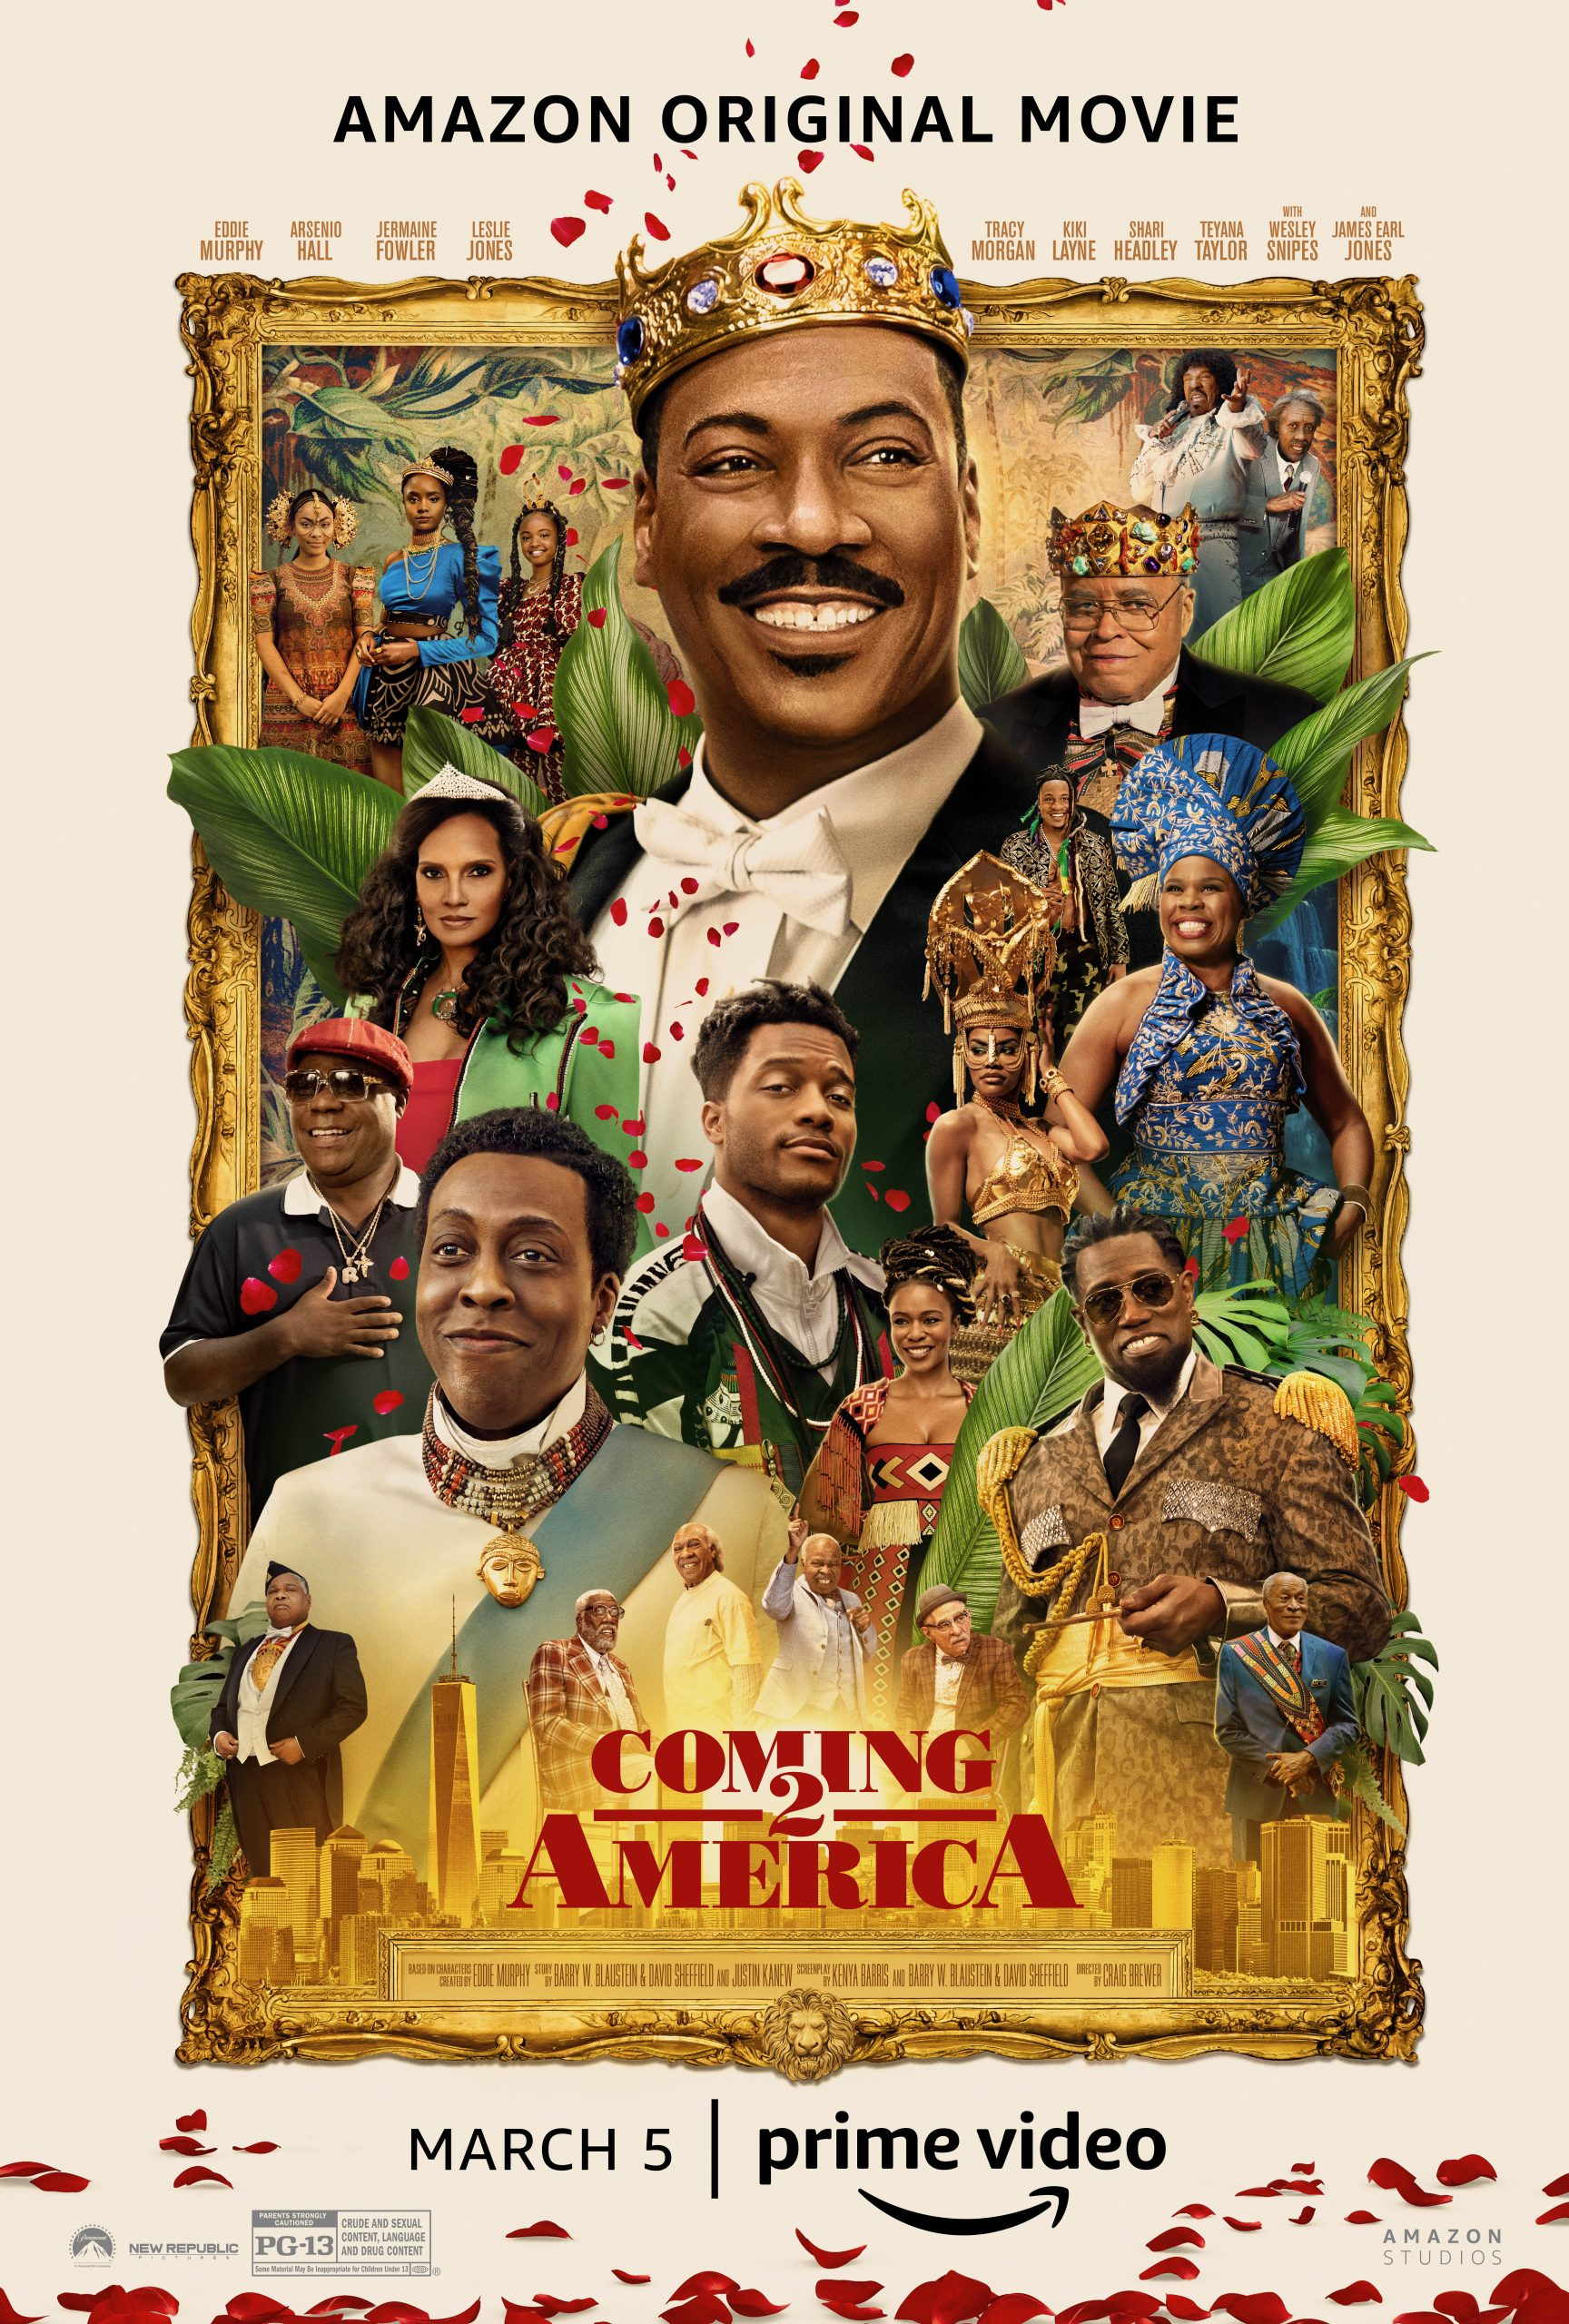 New Coming 2 America Trailer Released